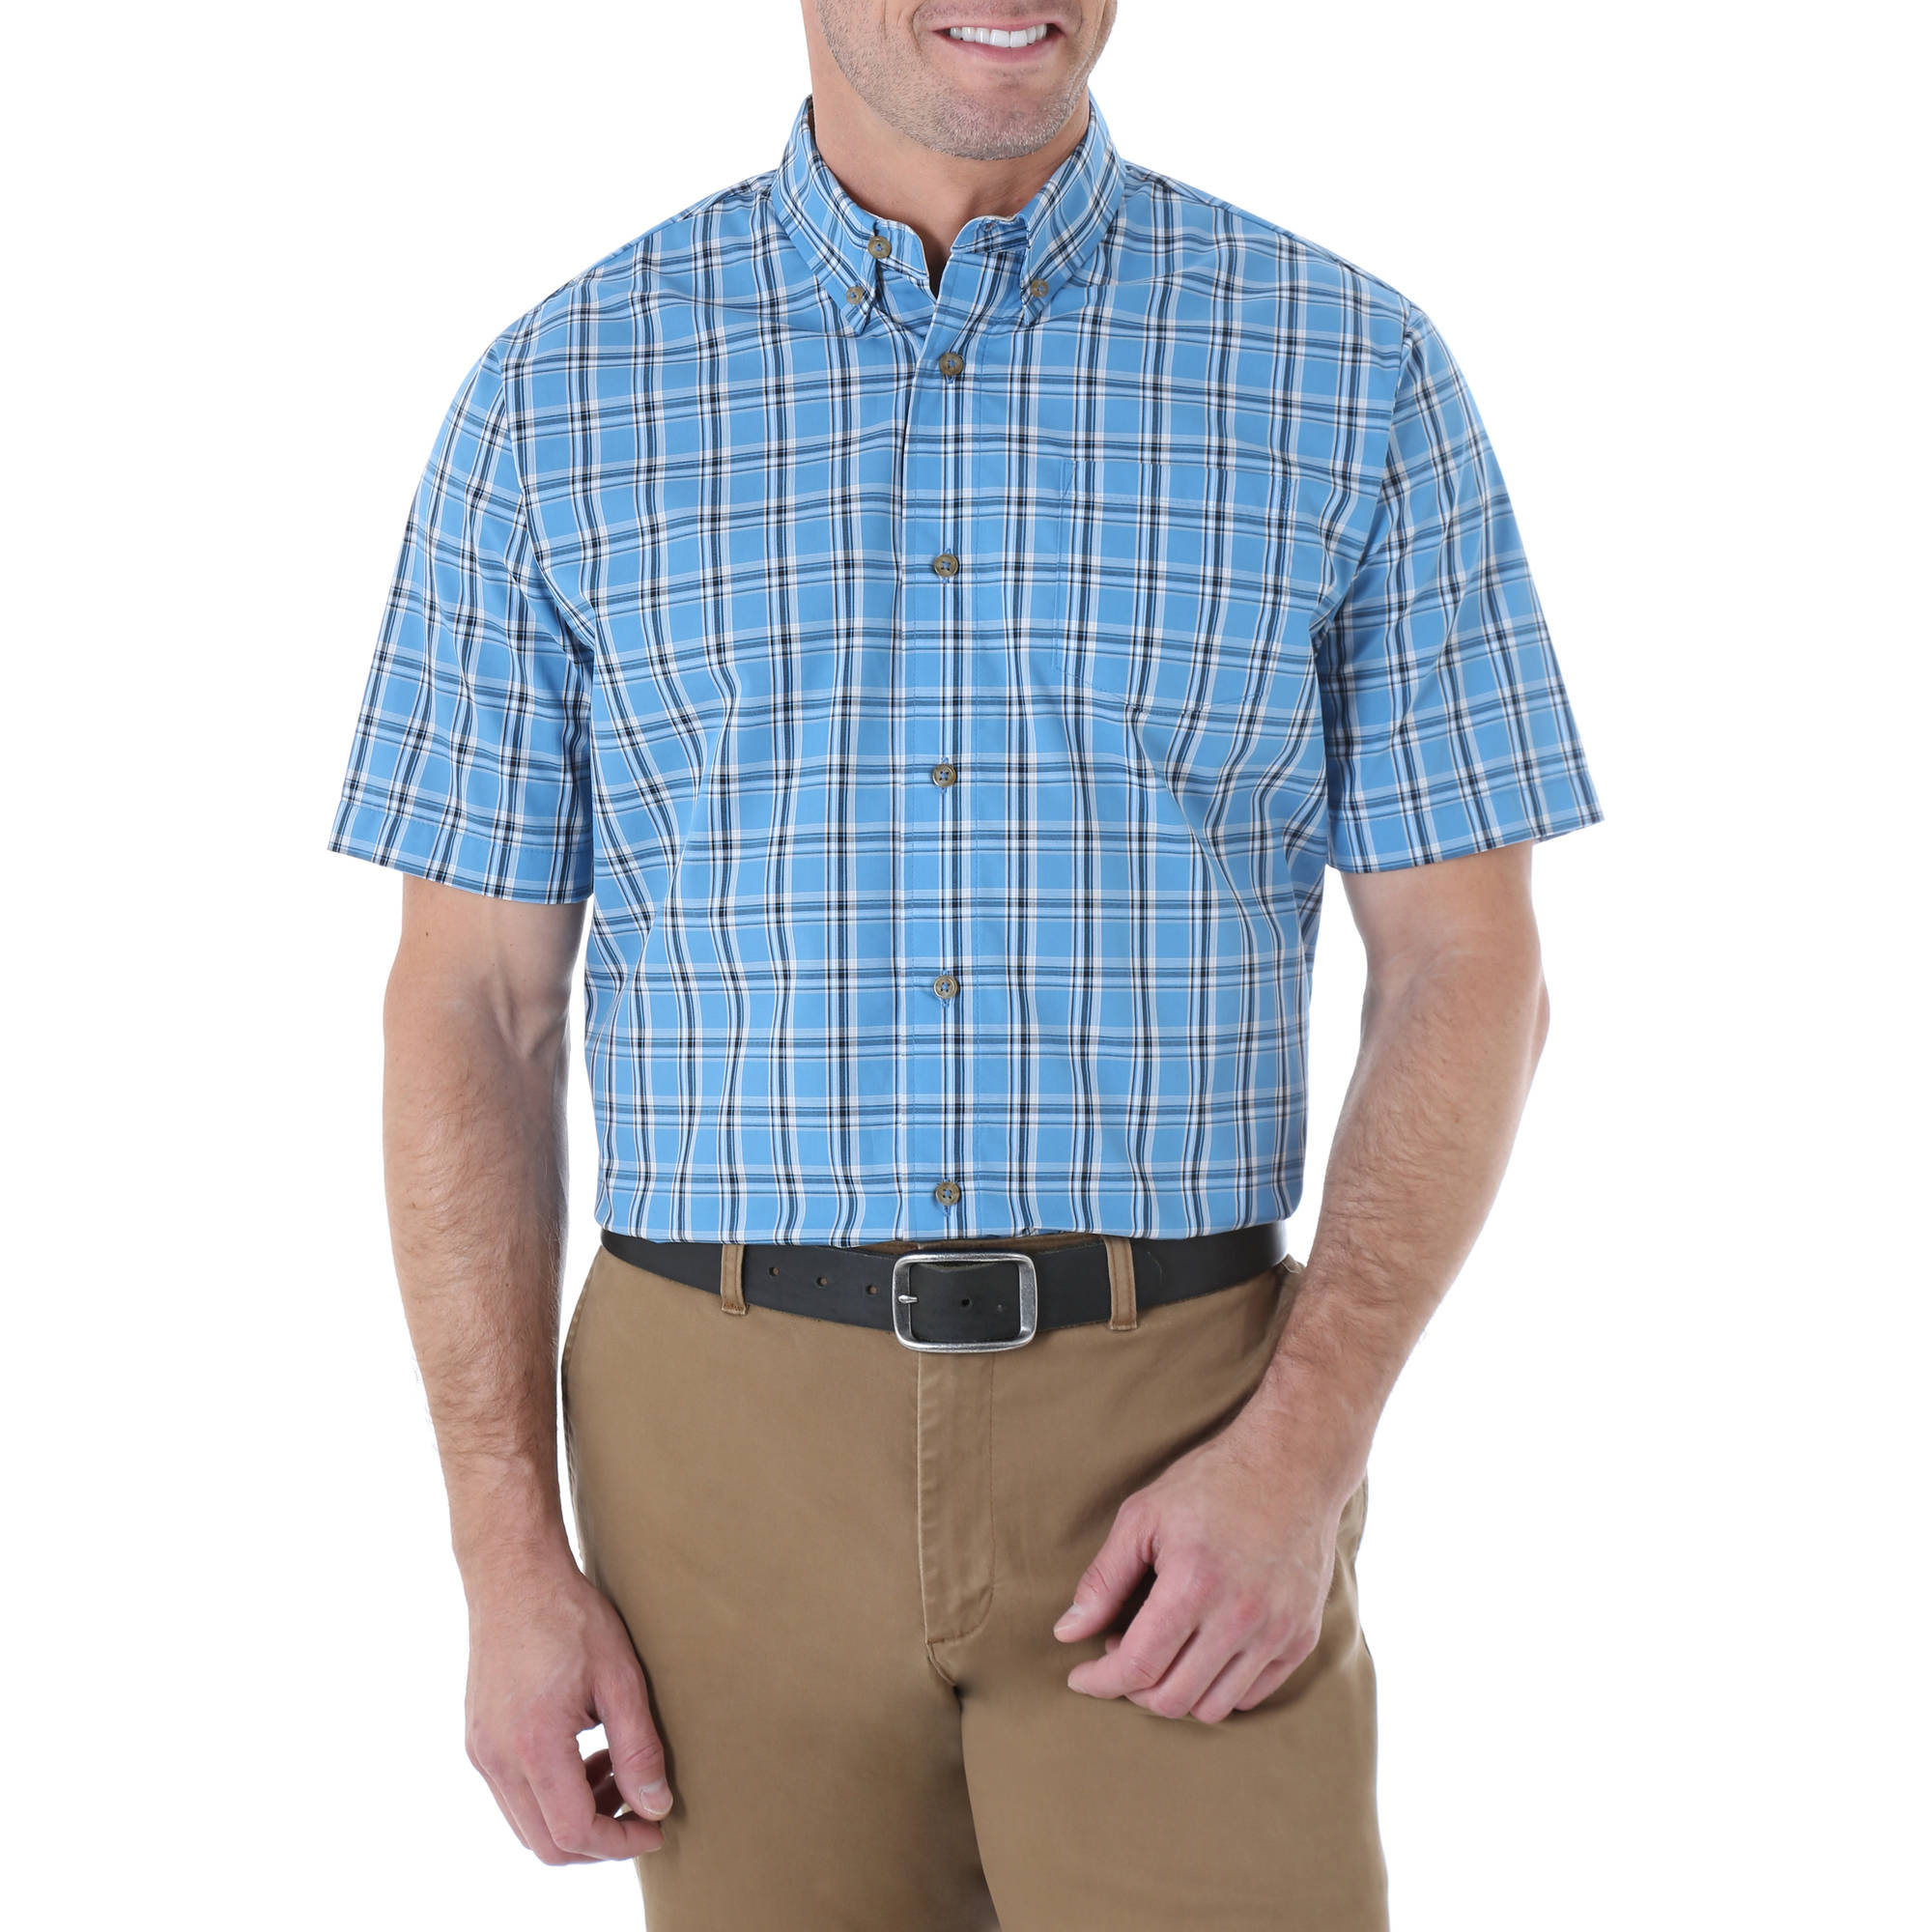 Wrangler Mens' Short Sleeve Wrinkle Resist Plaid Woven Shirt